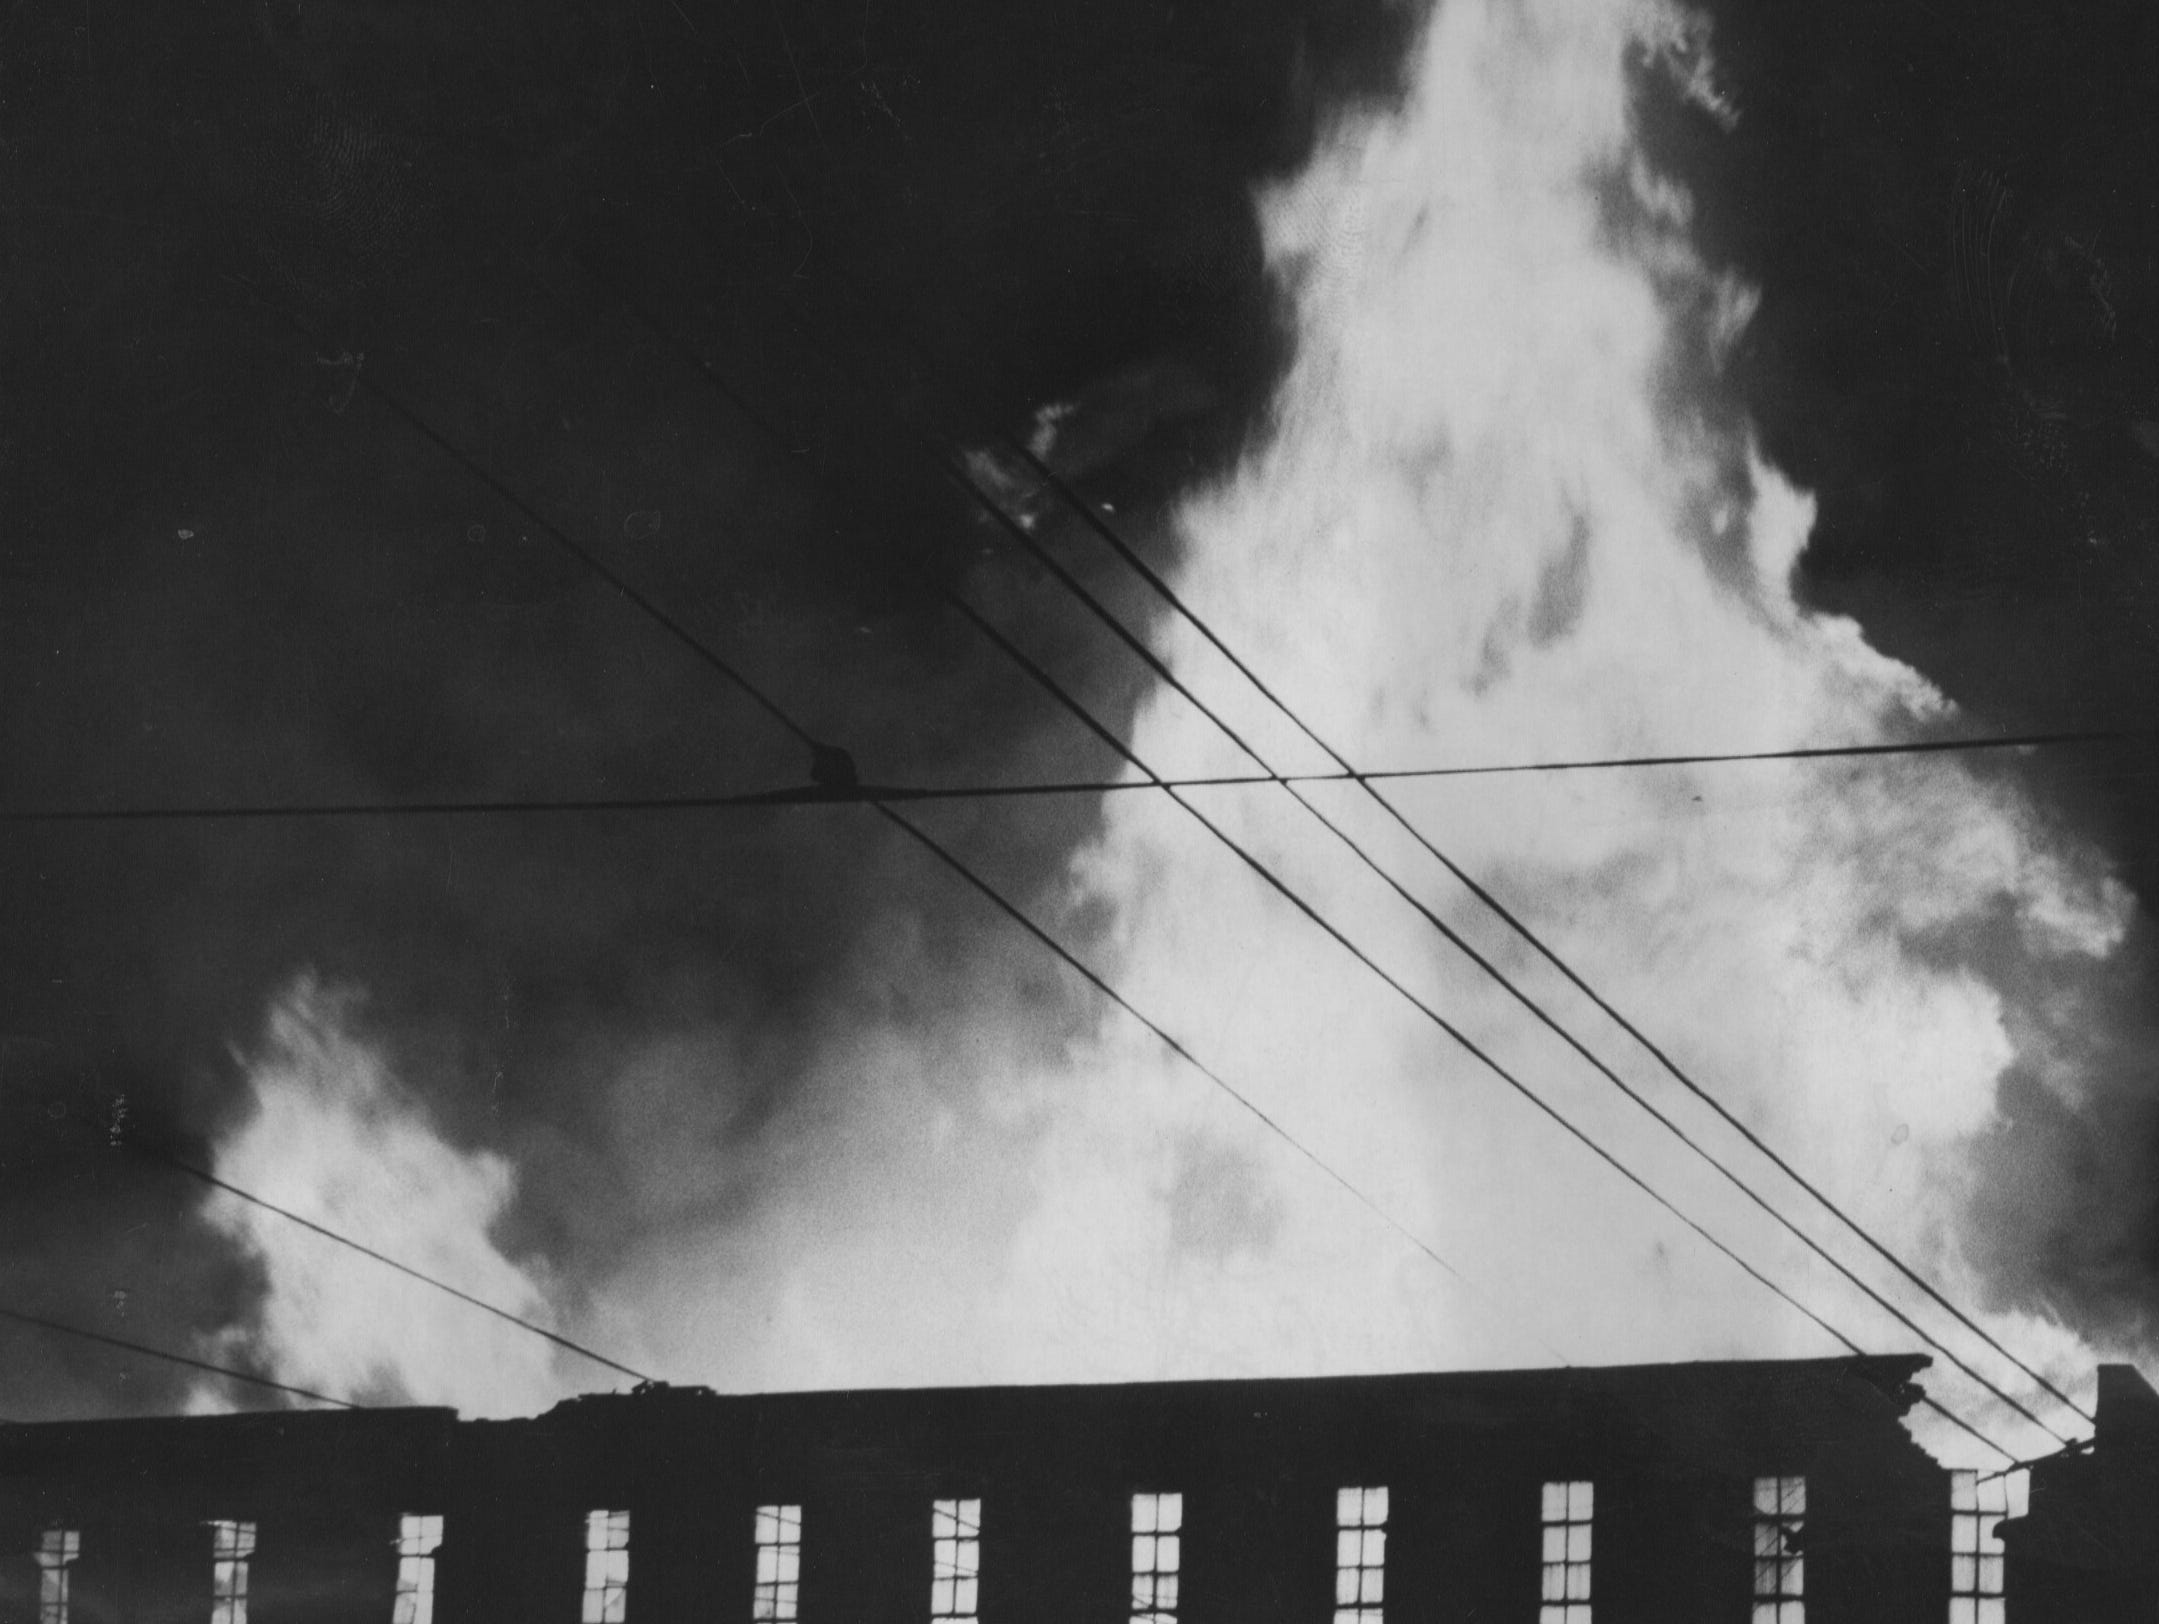 Flames shot 100 feet in the air last night from the burning five-story warehouse at the Karl Nussbaum iron wires and supply yard. 